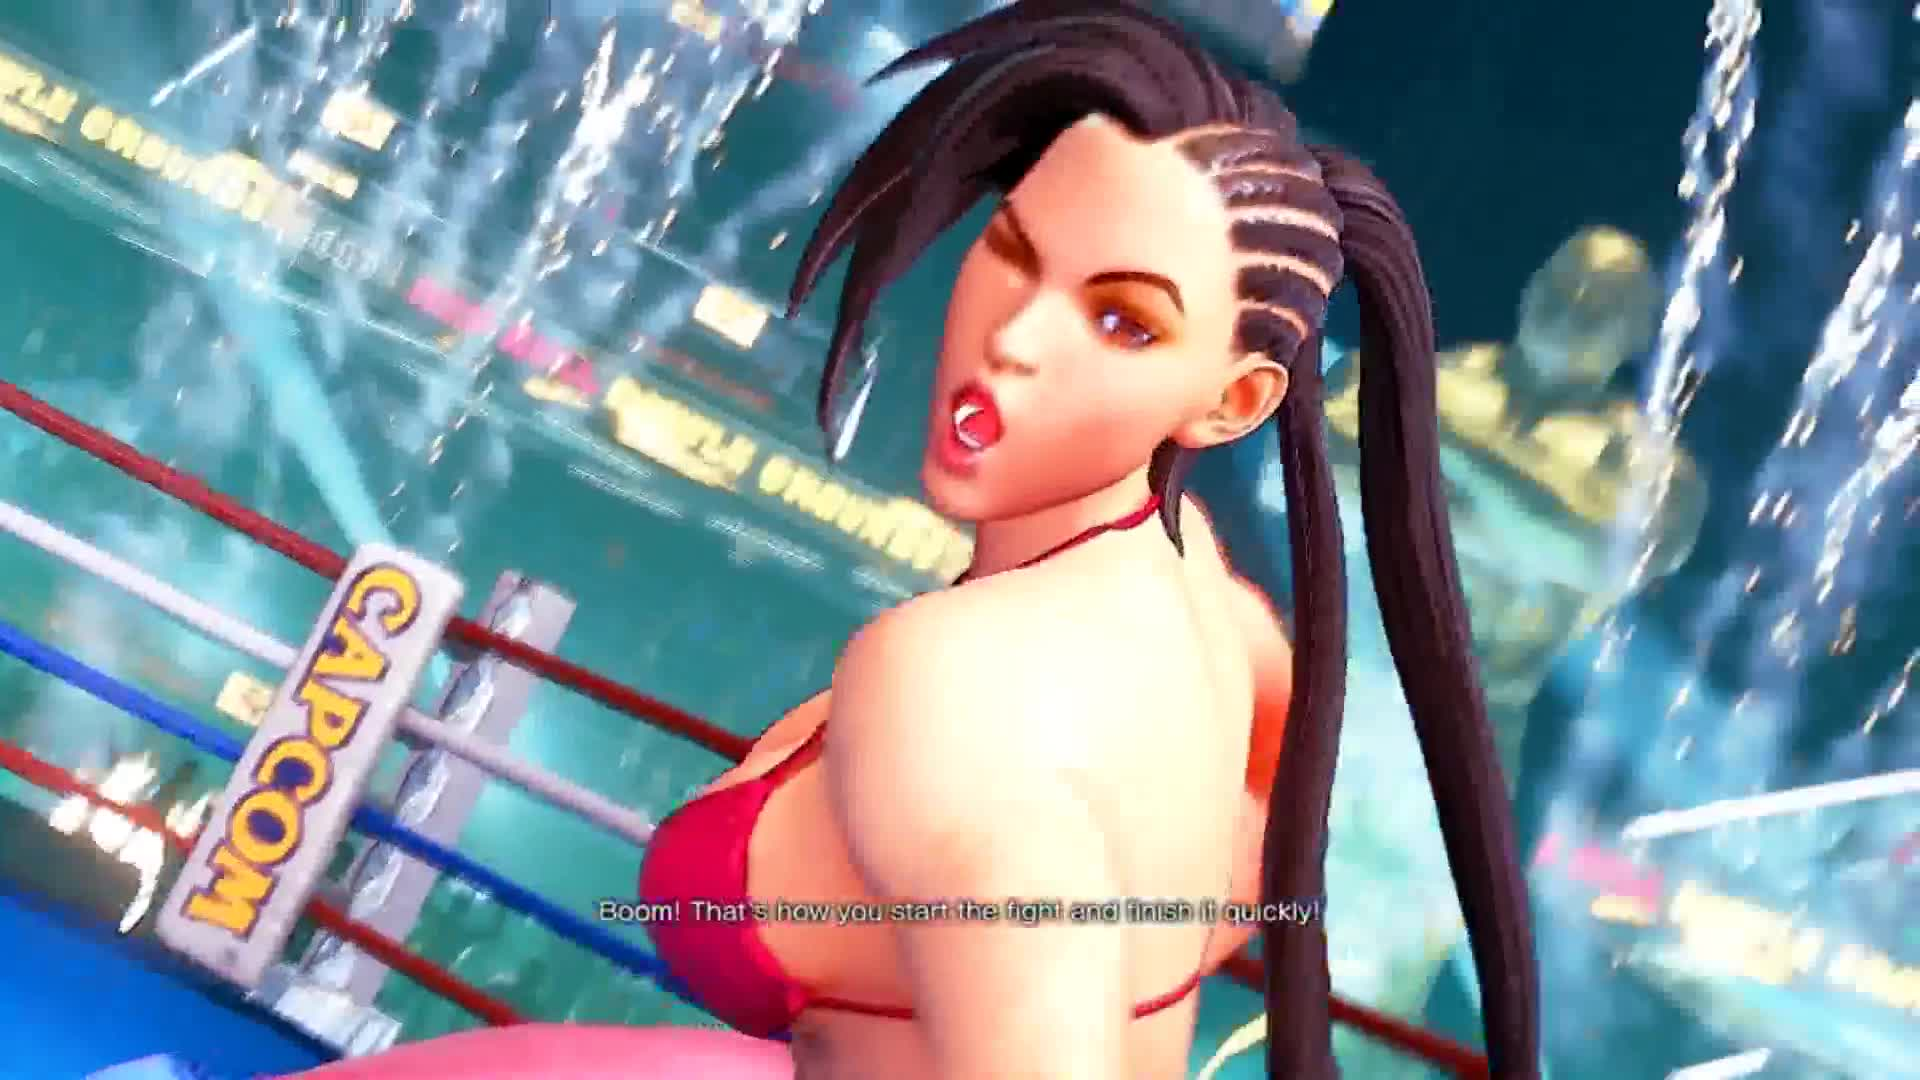 Street Fighter V Mods Gifs Search | Search & Share on Homdor